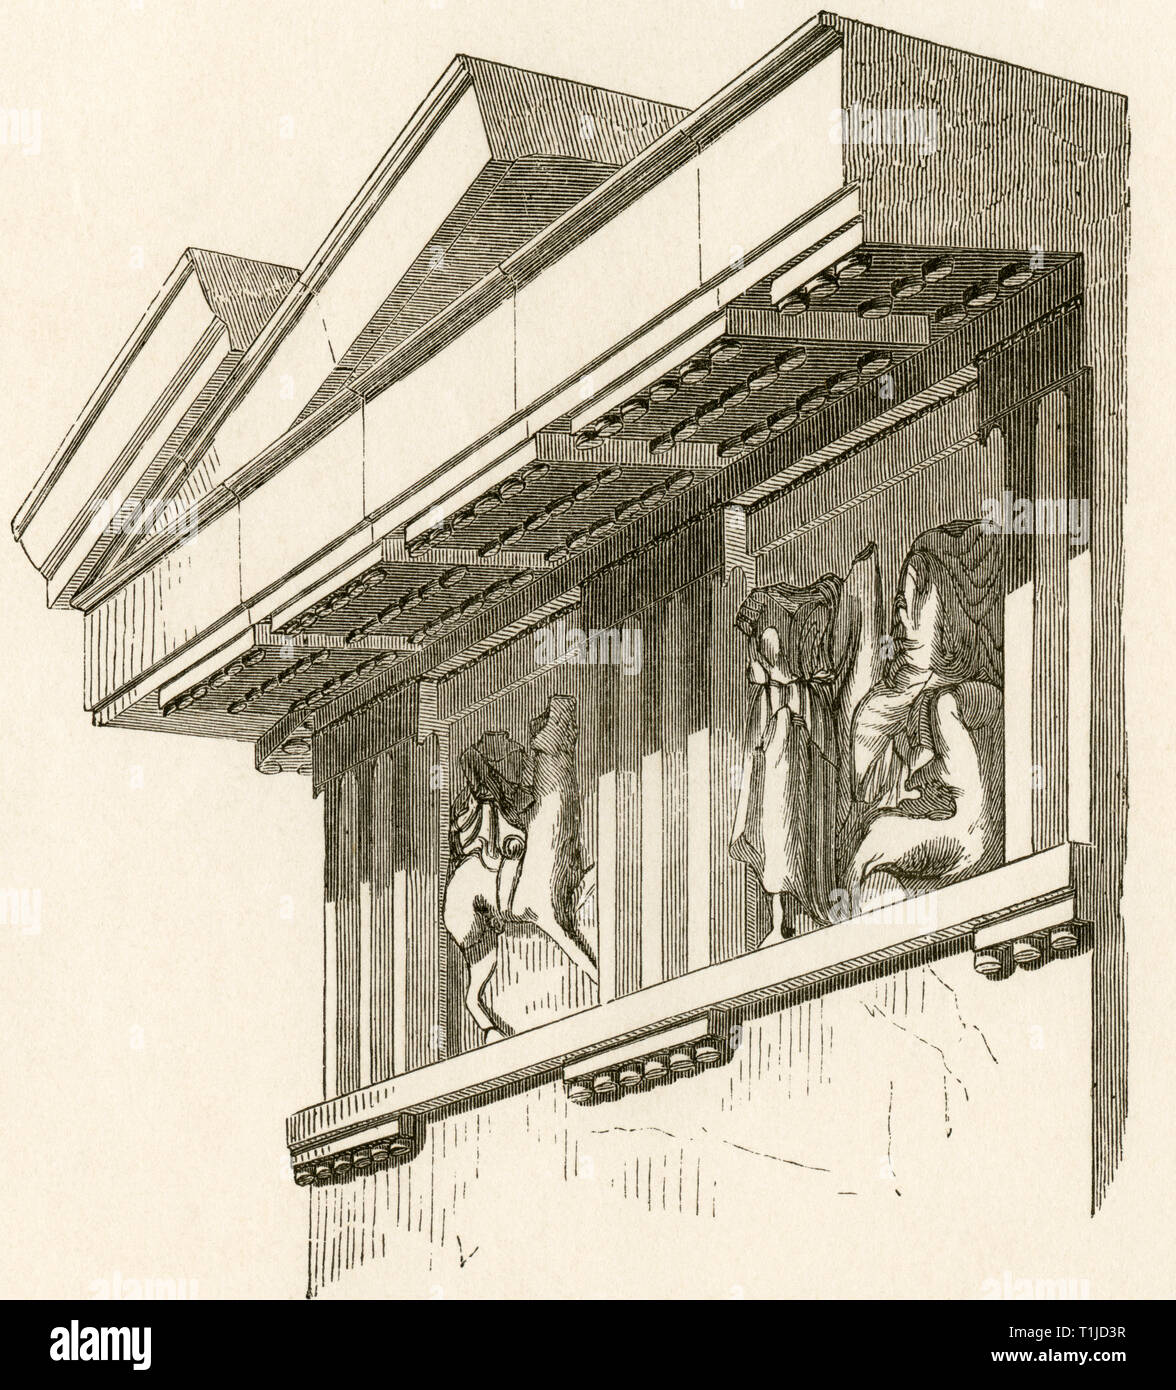 """ancient world, Greece, Doric frieze and sims, illustration from: """"Kunsthistorische Bilderbogen """" (Art history image gallery), first part, published by E. A. Seemann, Leipzig, 1878., Additional-Rights-Clearance-Info-Not-Available Stock Photo"""